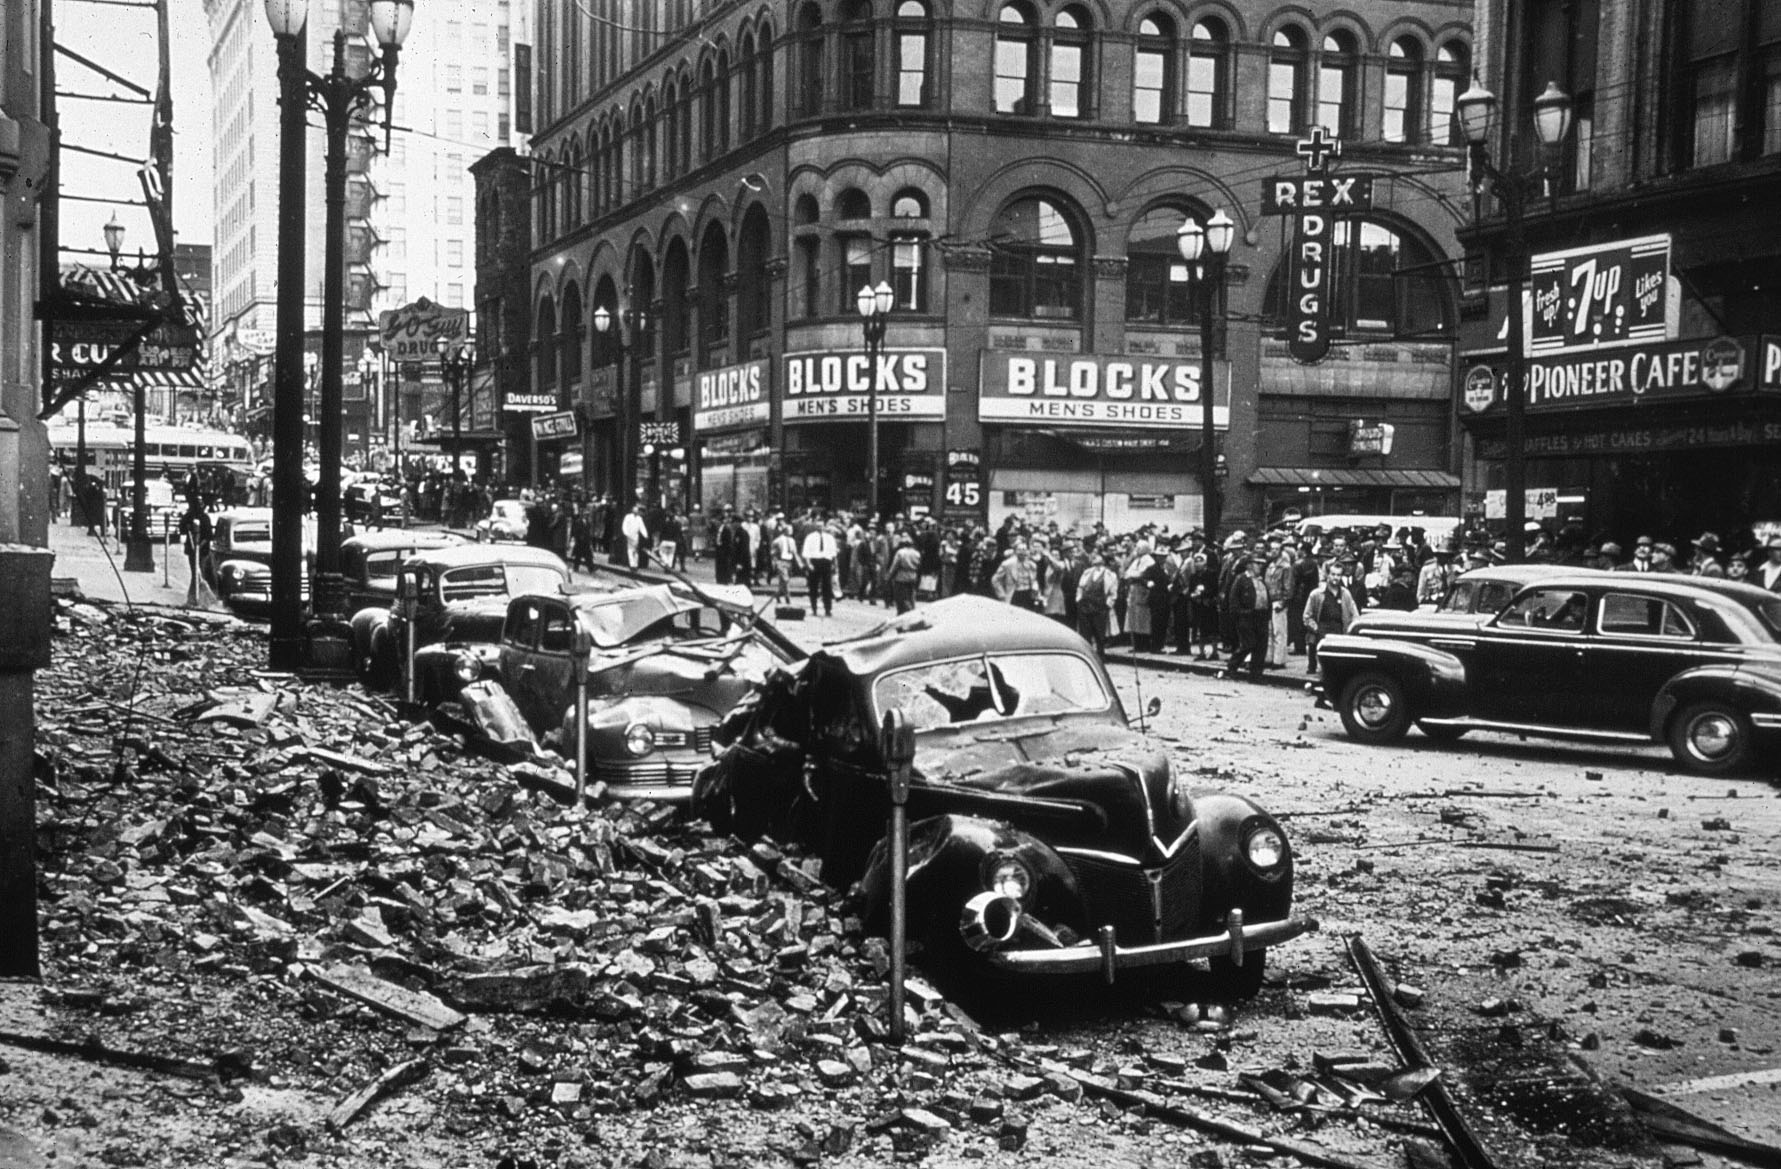 Yesler Way, downtown Seattle, showing damage in 1949 earthquake from falling parapets and brick ornamentation and a collapsed fire escape, shown at left.